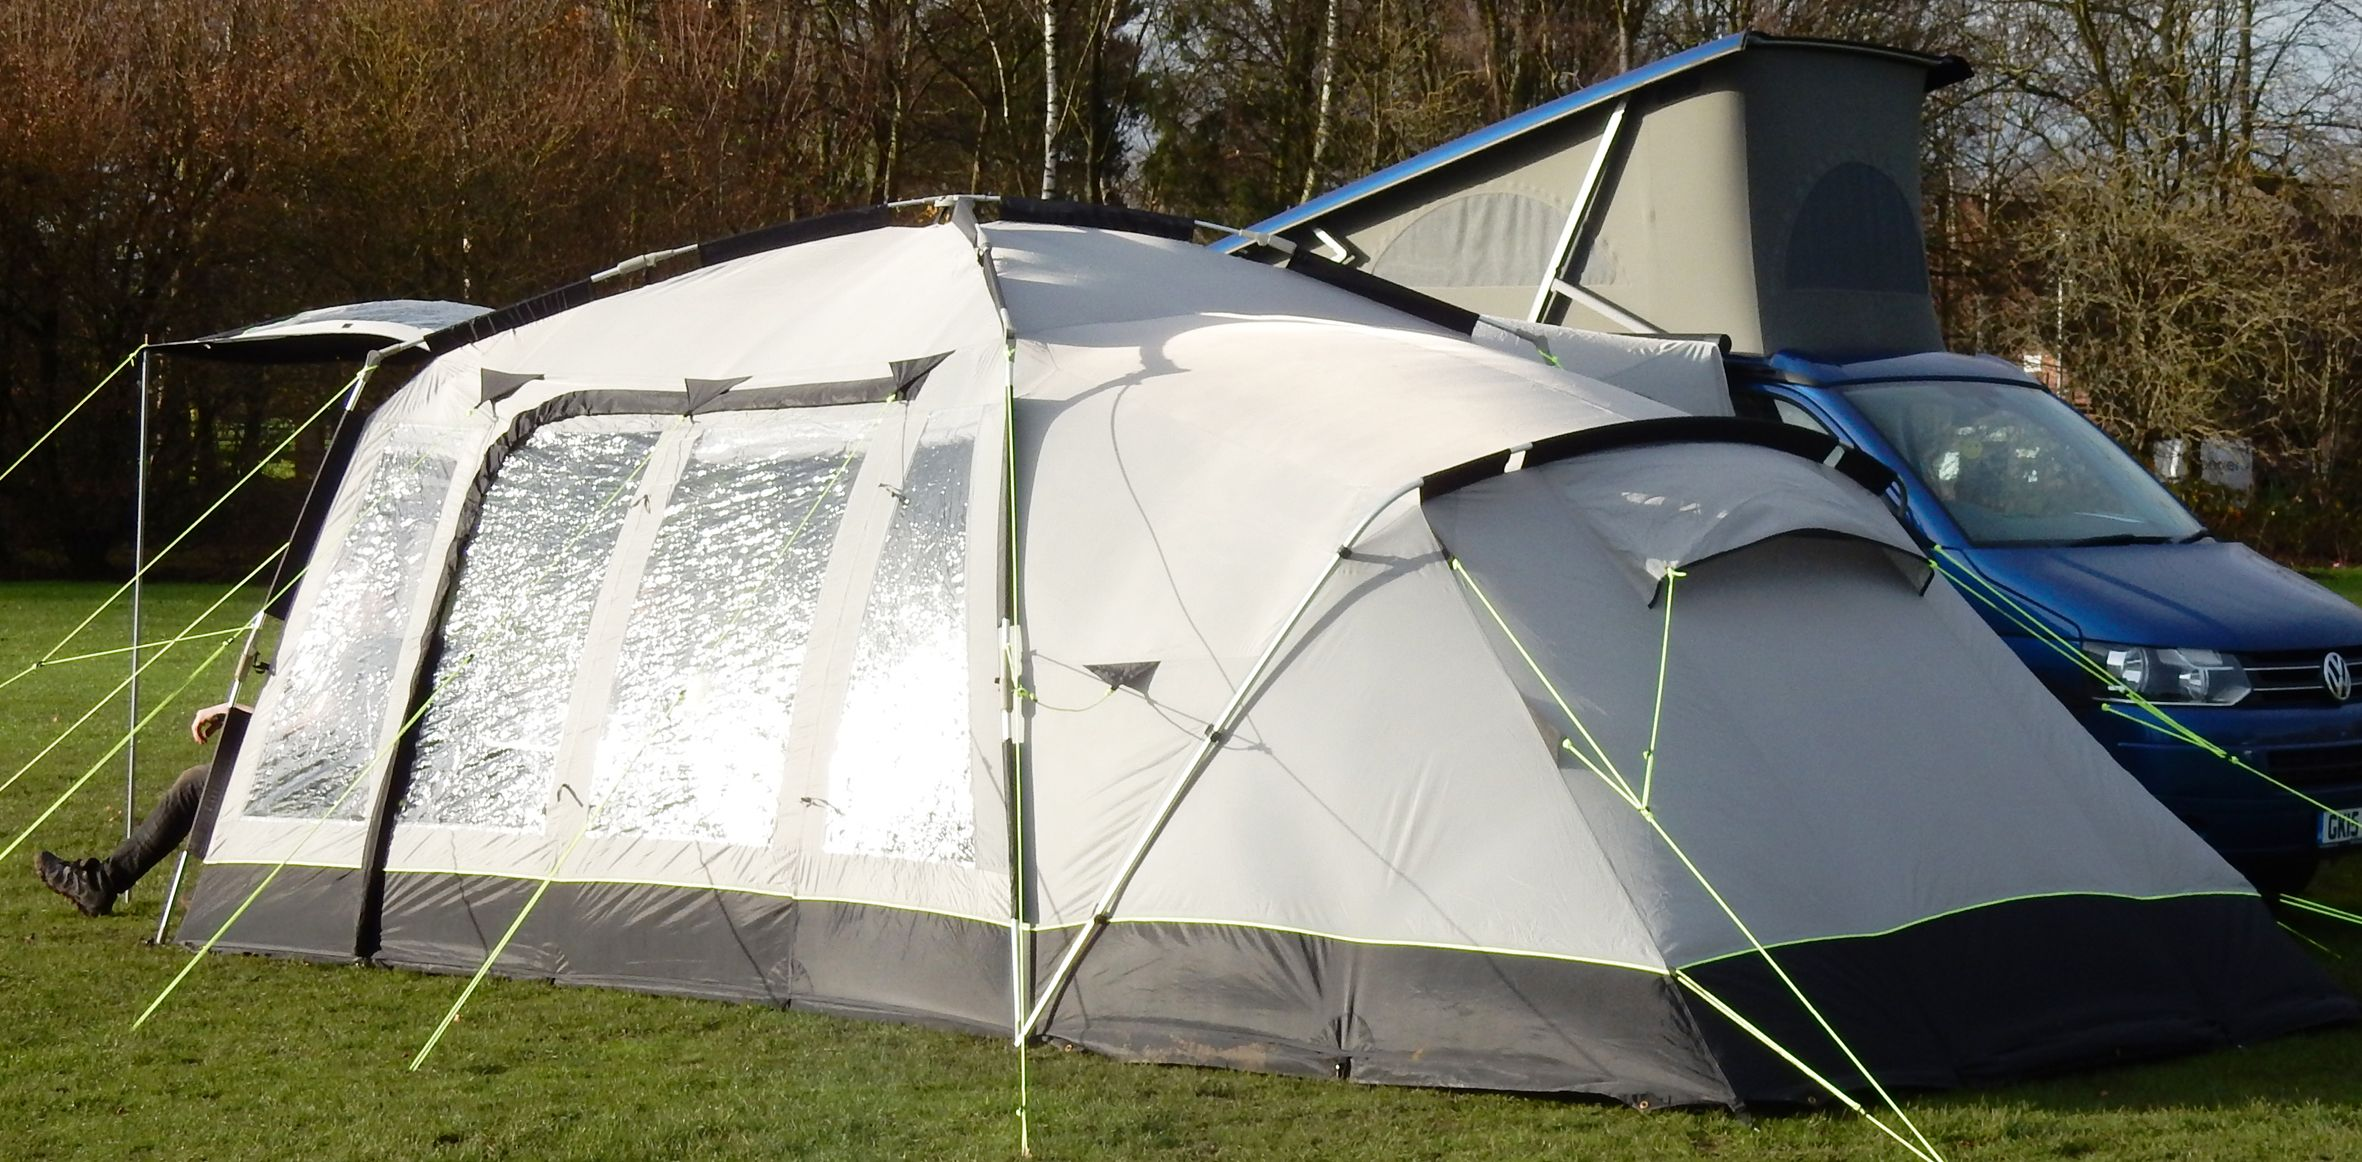 Khyam Motordome Sleeper 380 Quick Erect Driveaway Awning ...